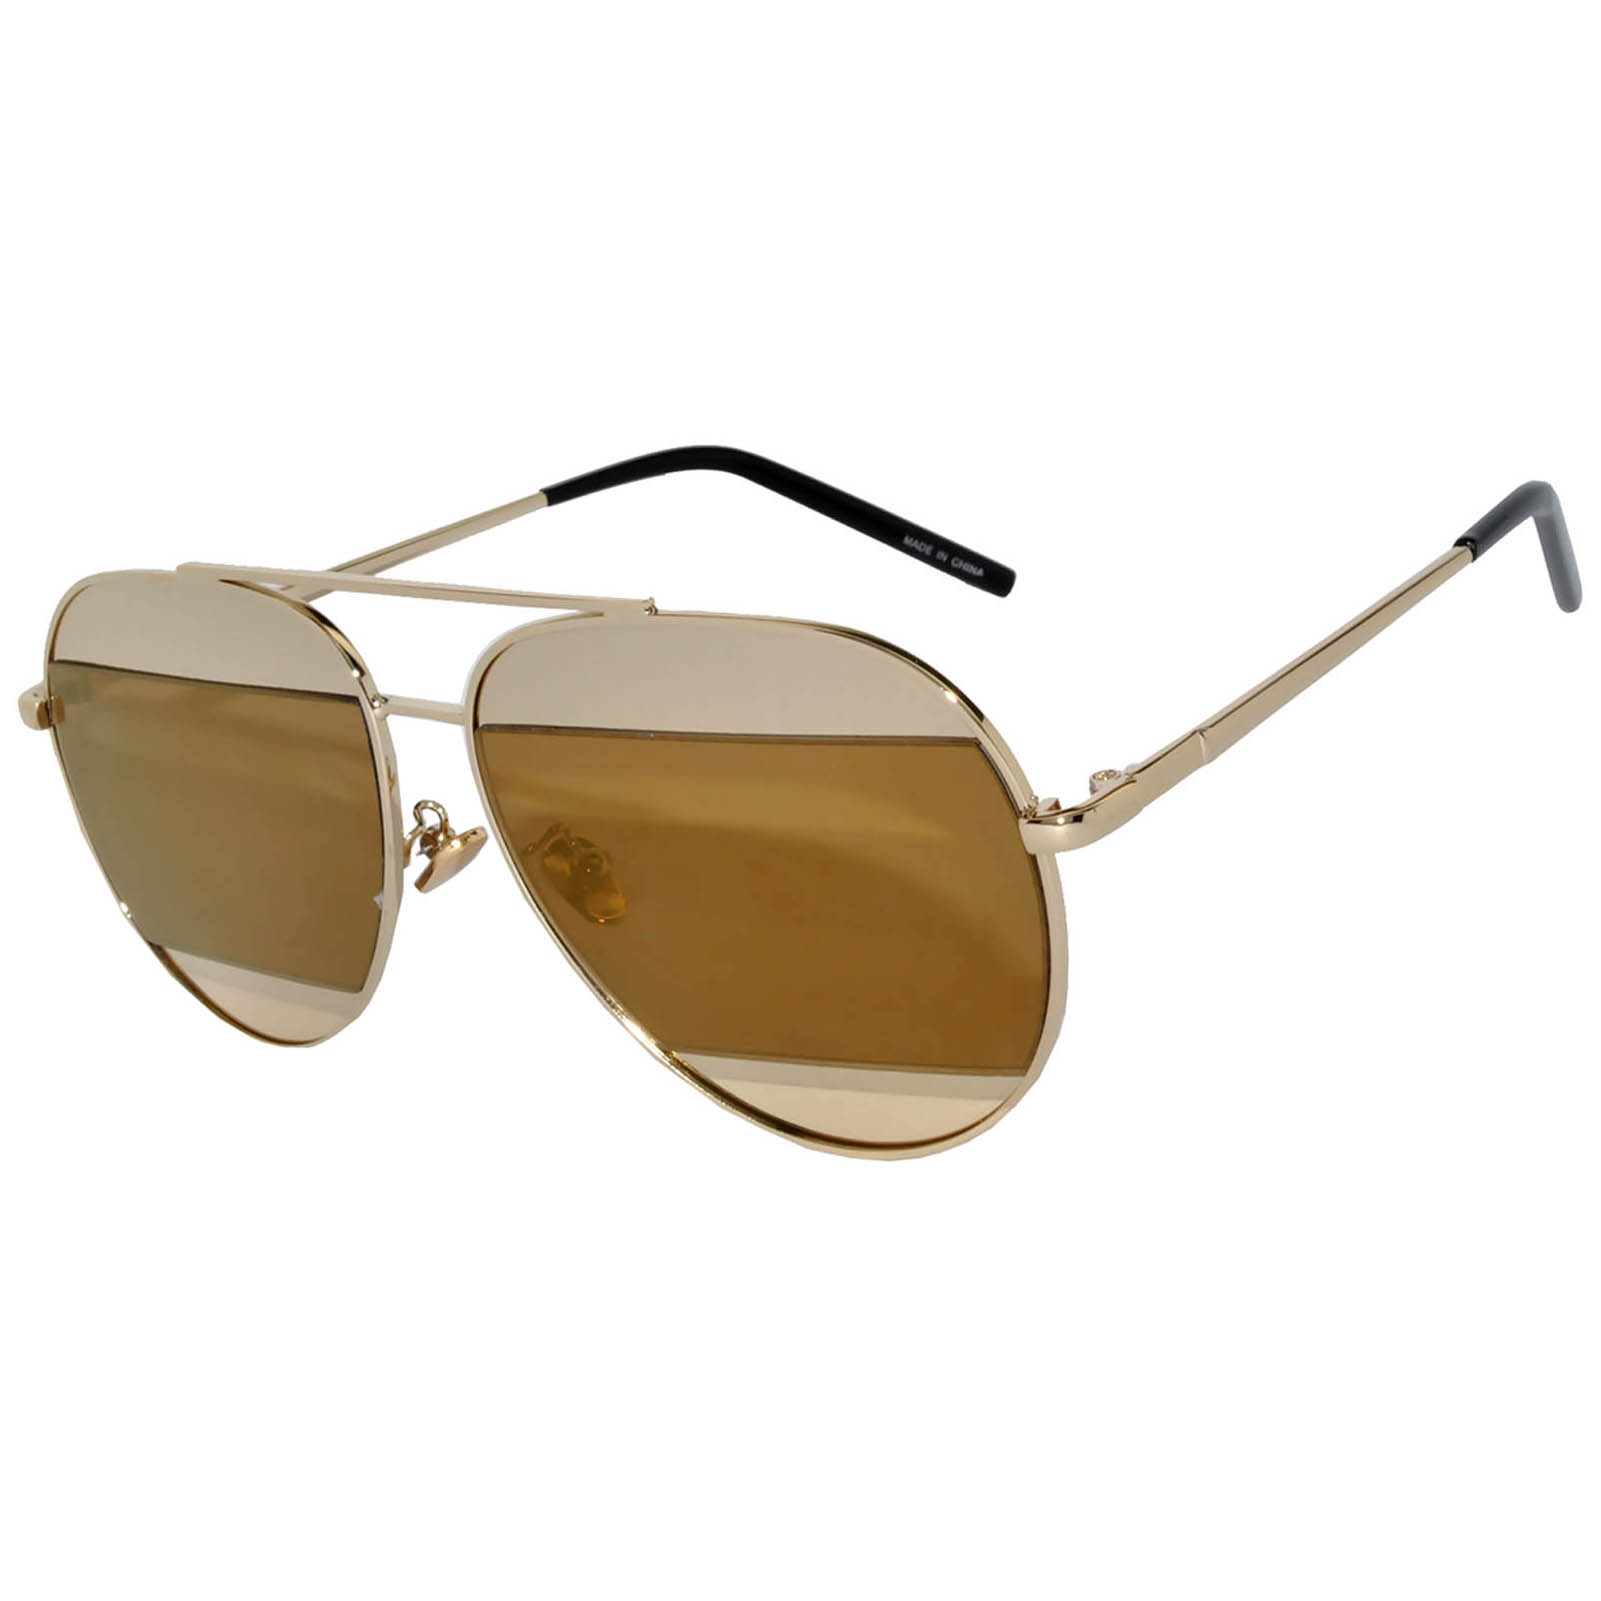 OWL ® Eyewear Sunglasses 86004 C6 Women's Metal Aviator Gold Frame Brown Mirror Lens One Pair